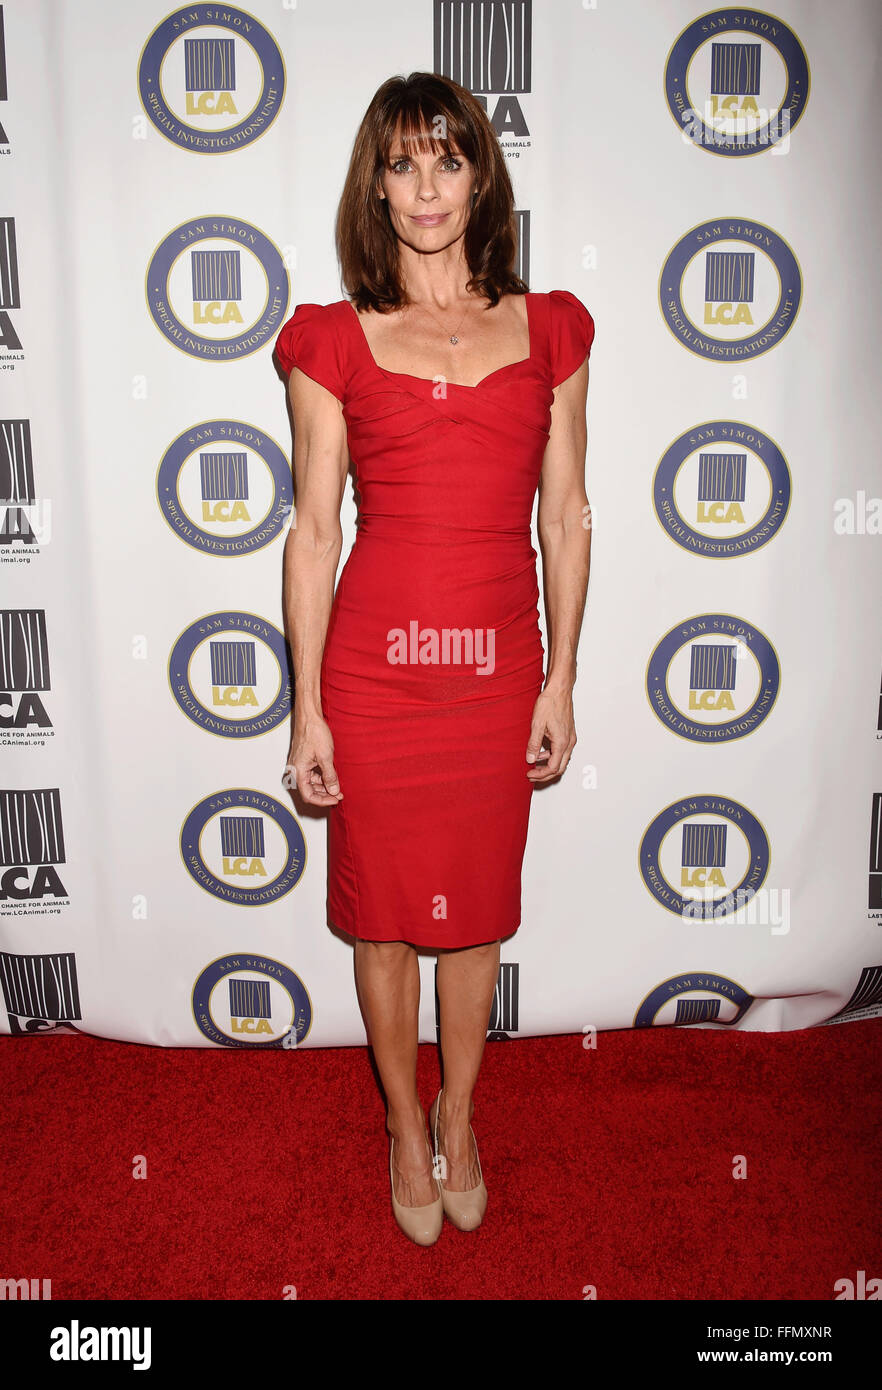 Actress Alexandra Paul attends the Last Chance for Animals Benefit Gala at The Beverly Hilton Hotel on October 24, - Stock Image